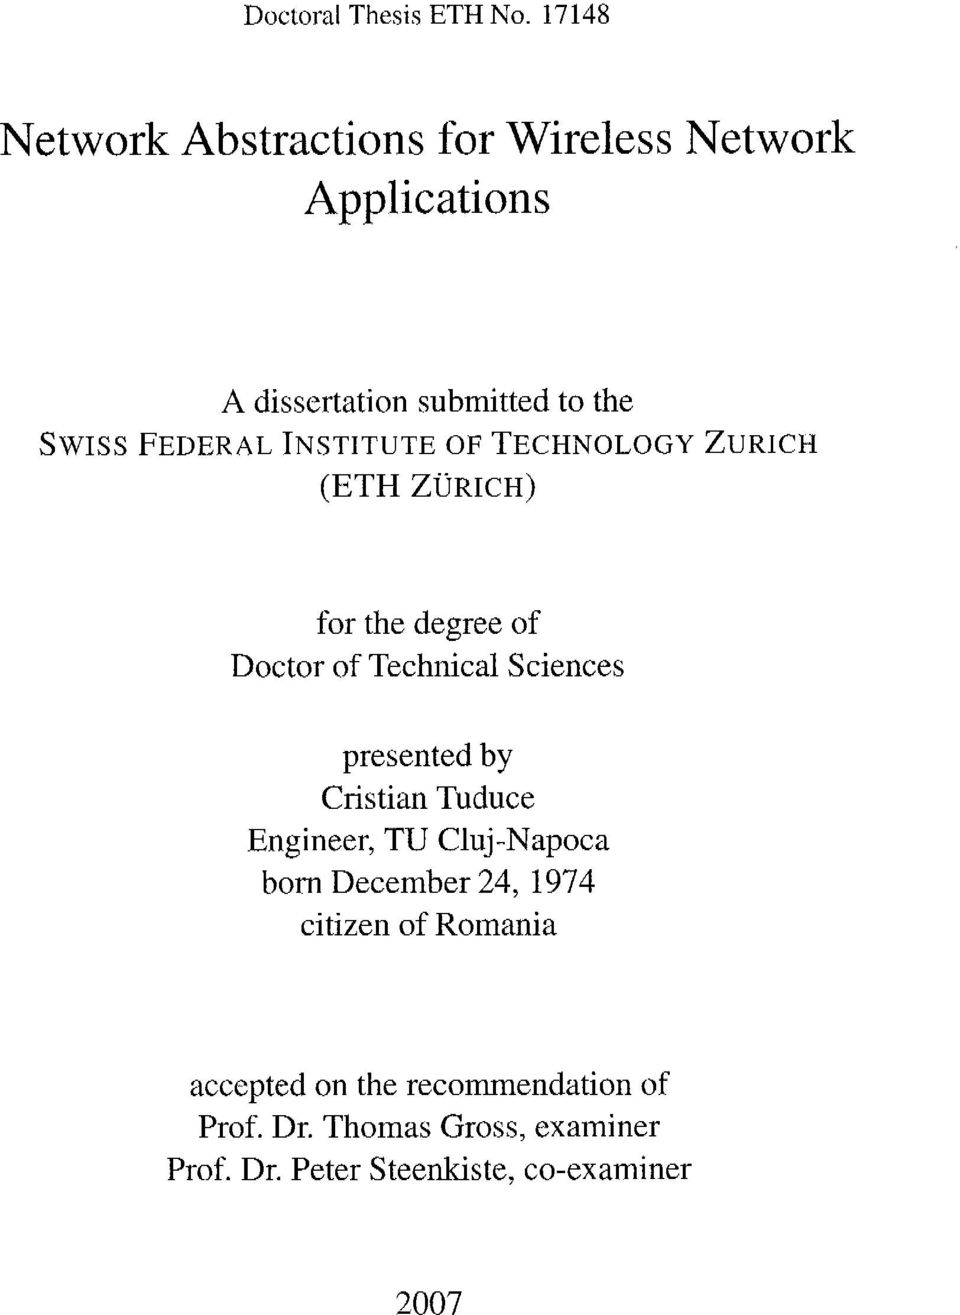 Institute of Technology Zürich (ETH ZÜRICH) for the degree of Doctor of Technical Sciences presented by